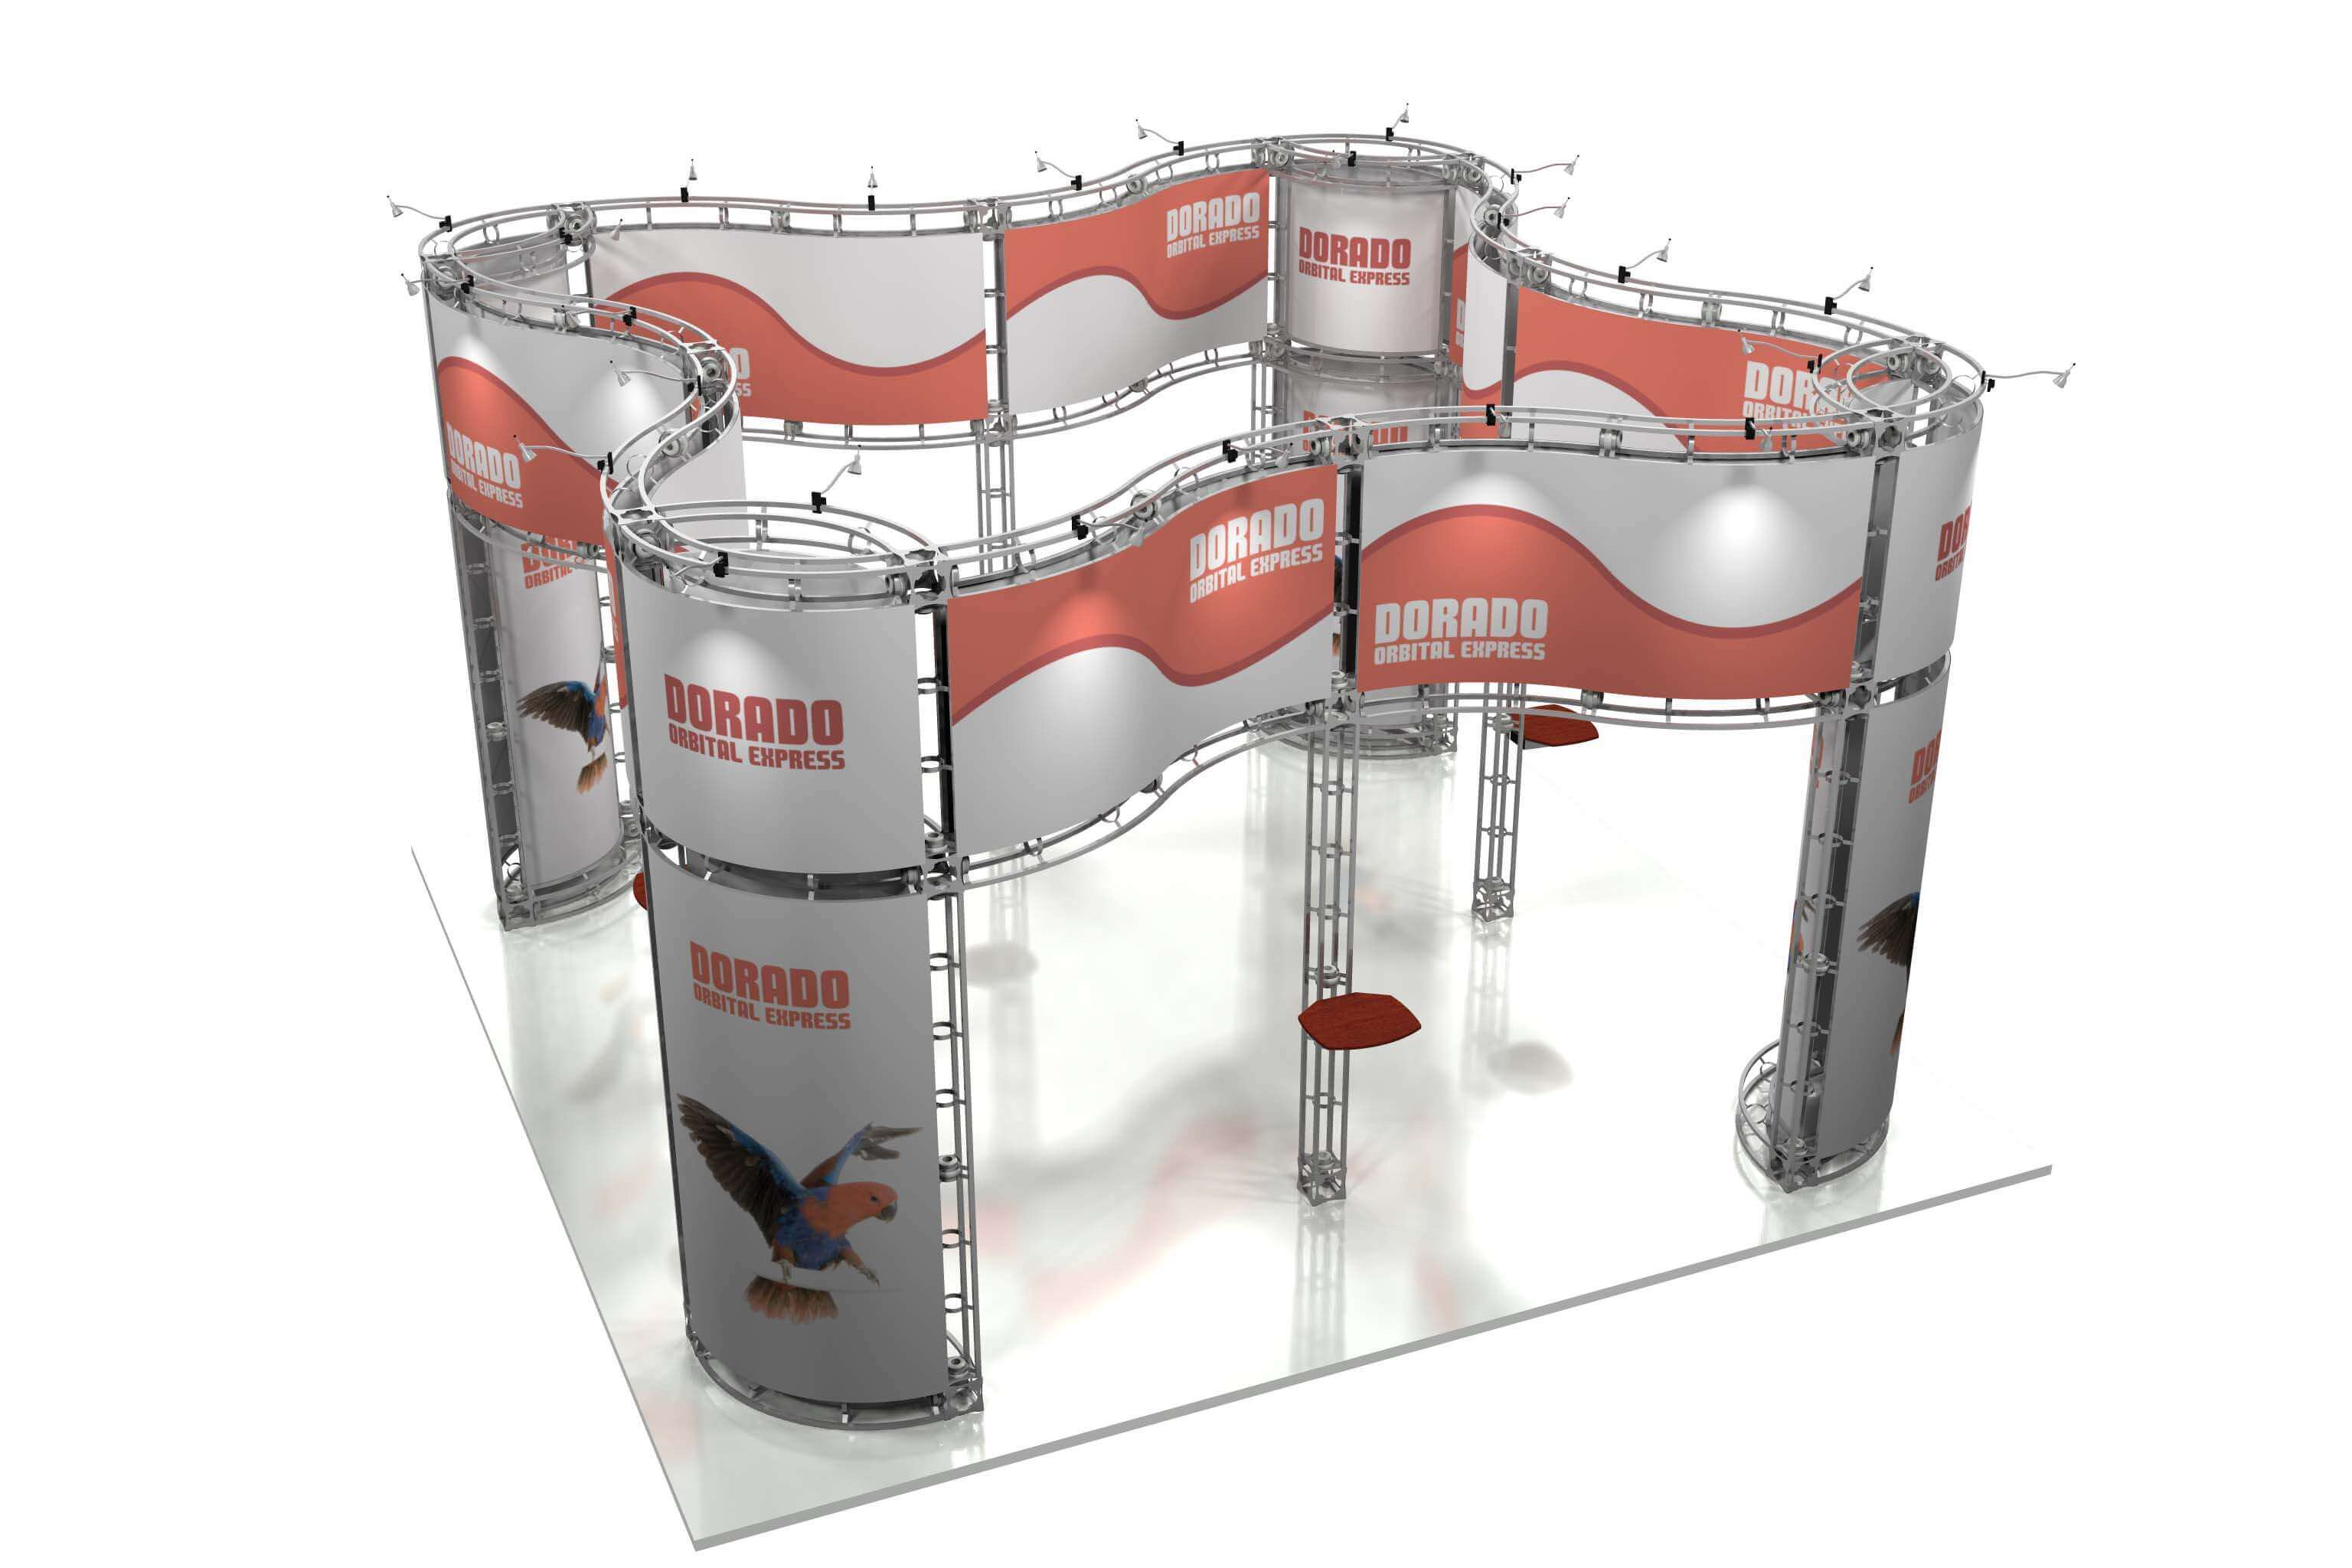 Custom Trade show display modular truss system